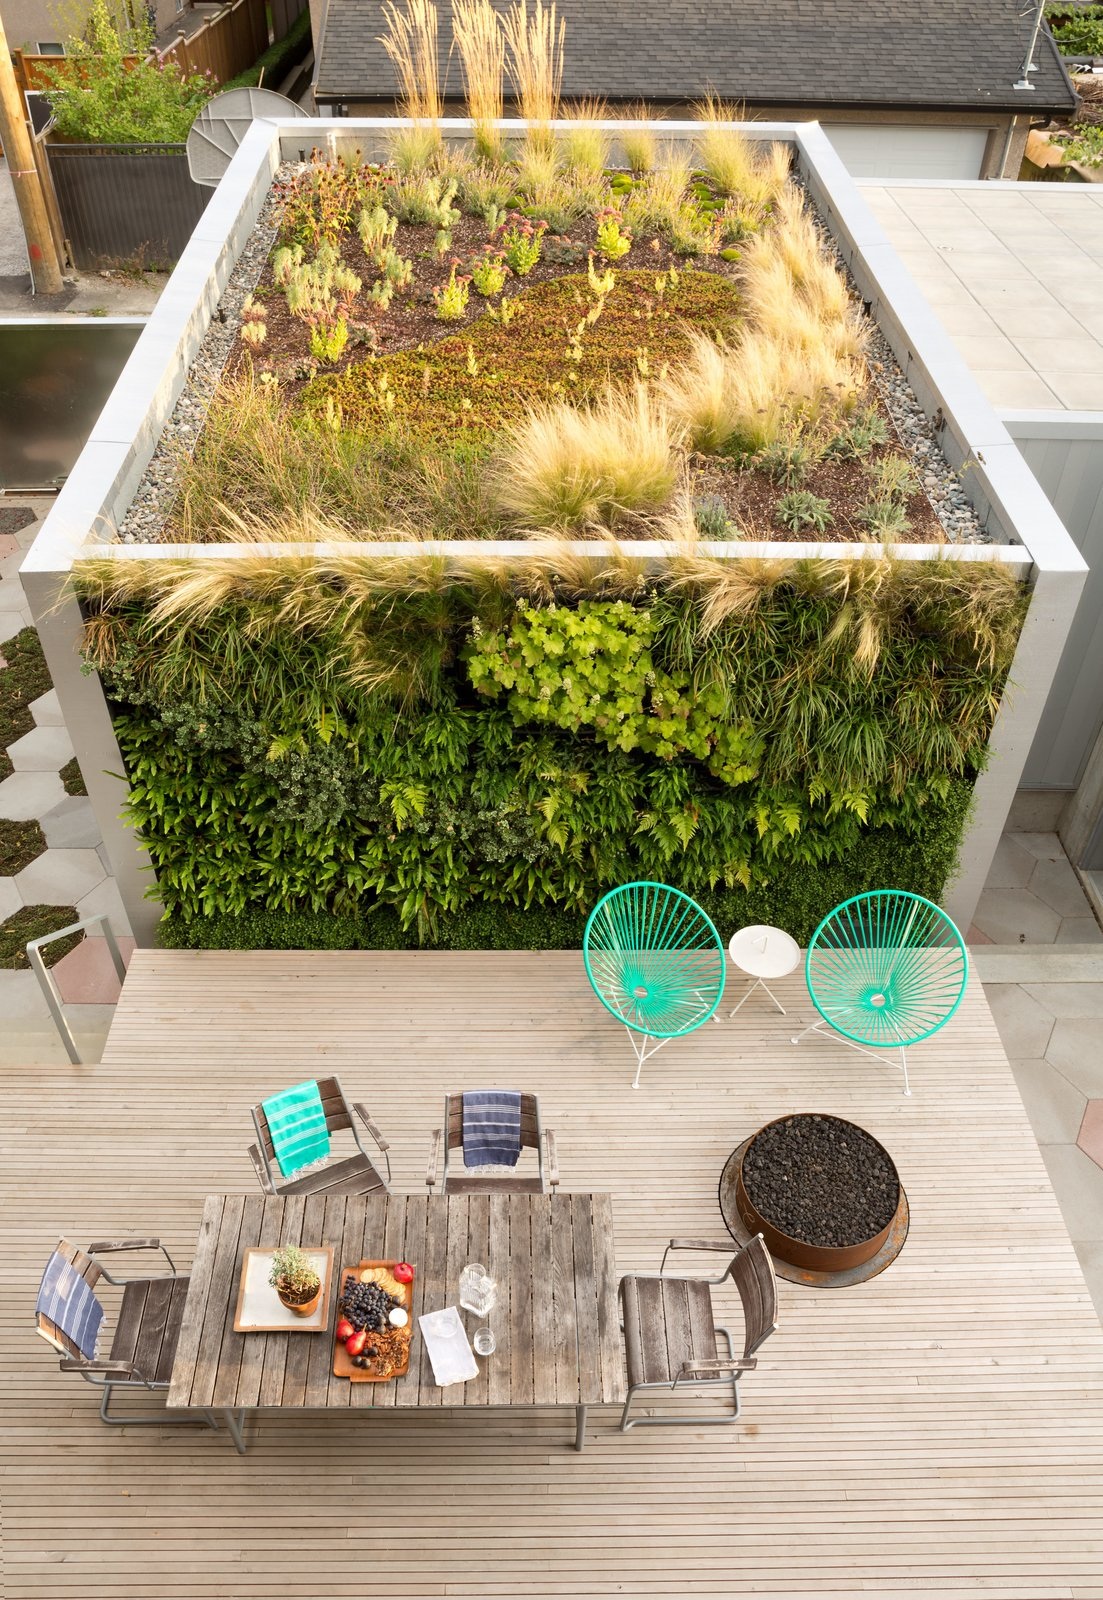 Designer Monica Berdin—who is married to architect Clinton Cuddington—worked with Aloe Designs to cover two sides of their backyard studio in drought-tolerant flora. A sheltered deck features a custom fire pit and a pair of turquoise Condesa chairs. Tagged: Rooftop, Wood Patio, Porch, Deck, Large Patio, Porch, Deck, Exterior, and Green Roof Material.  Photo 24 of 25 in 25 Blissful Backyards from A Wild Garden Leaps Off the Walls of This Backyard Build